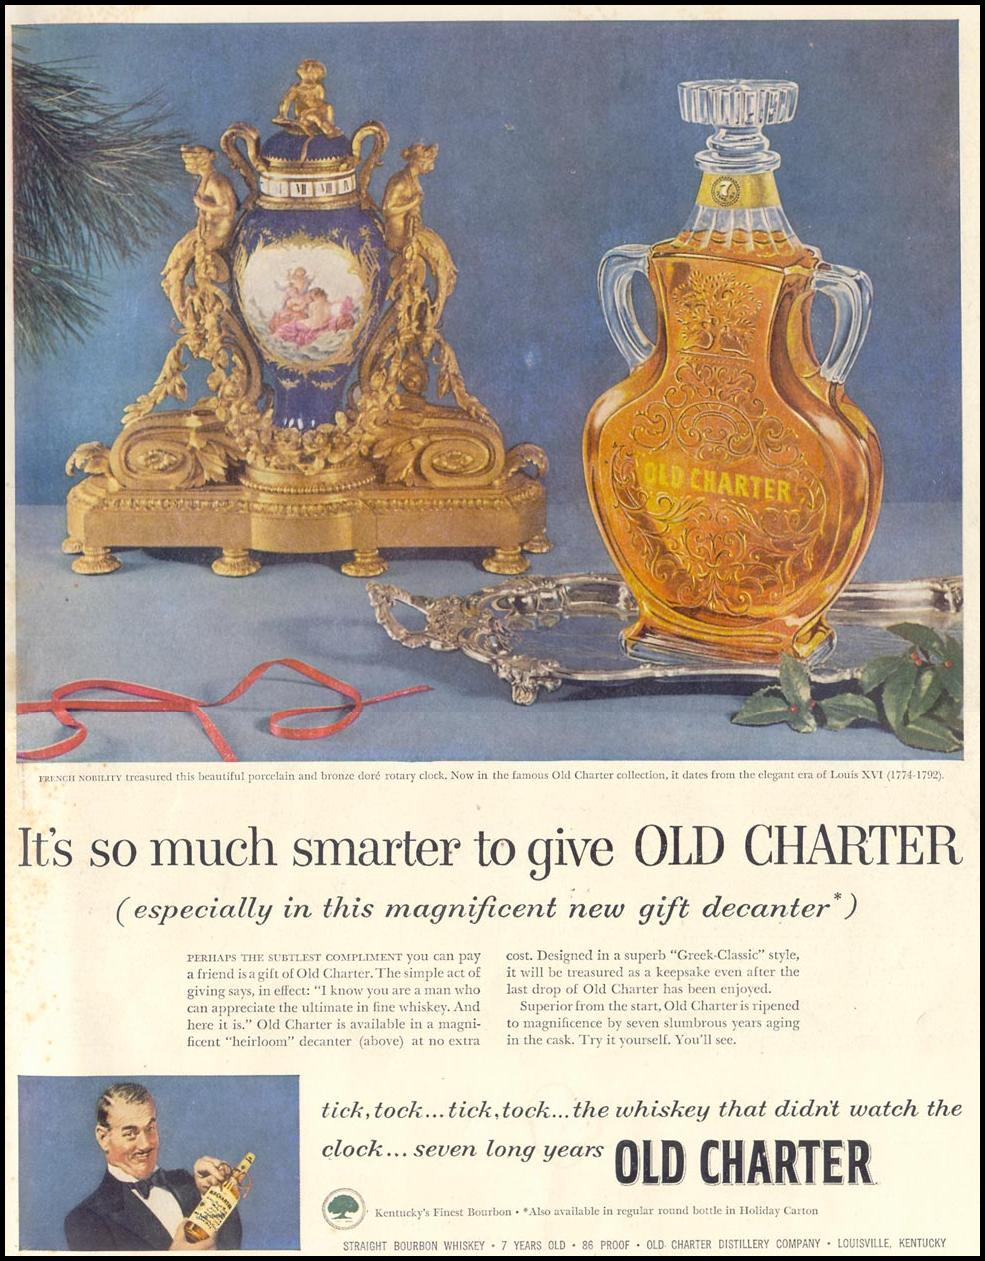 OLD CHARTER WHISKEY LIFE 11/30/1953 INSIDE BACK